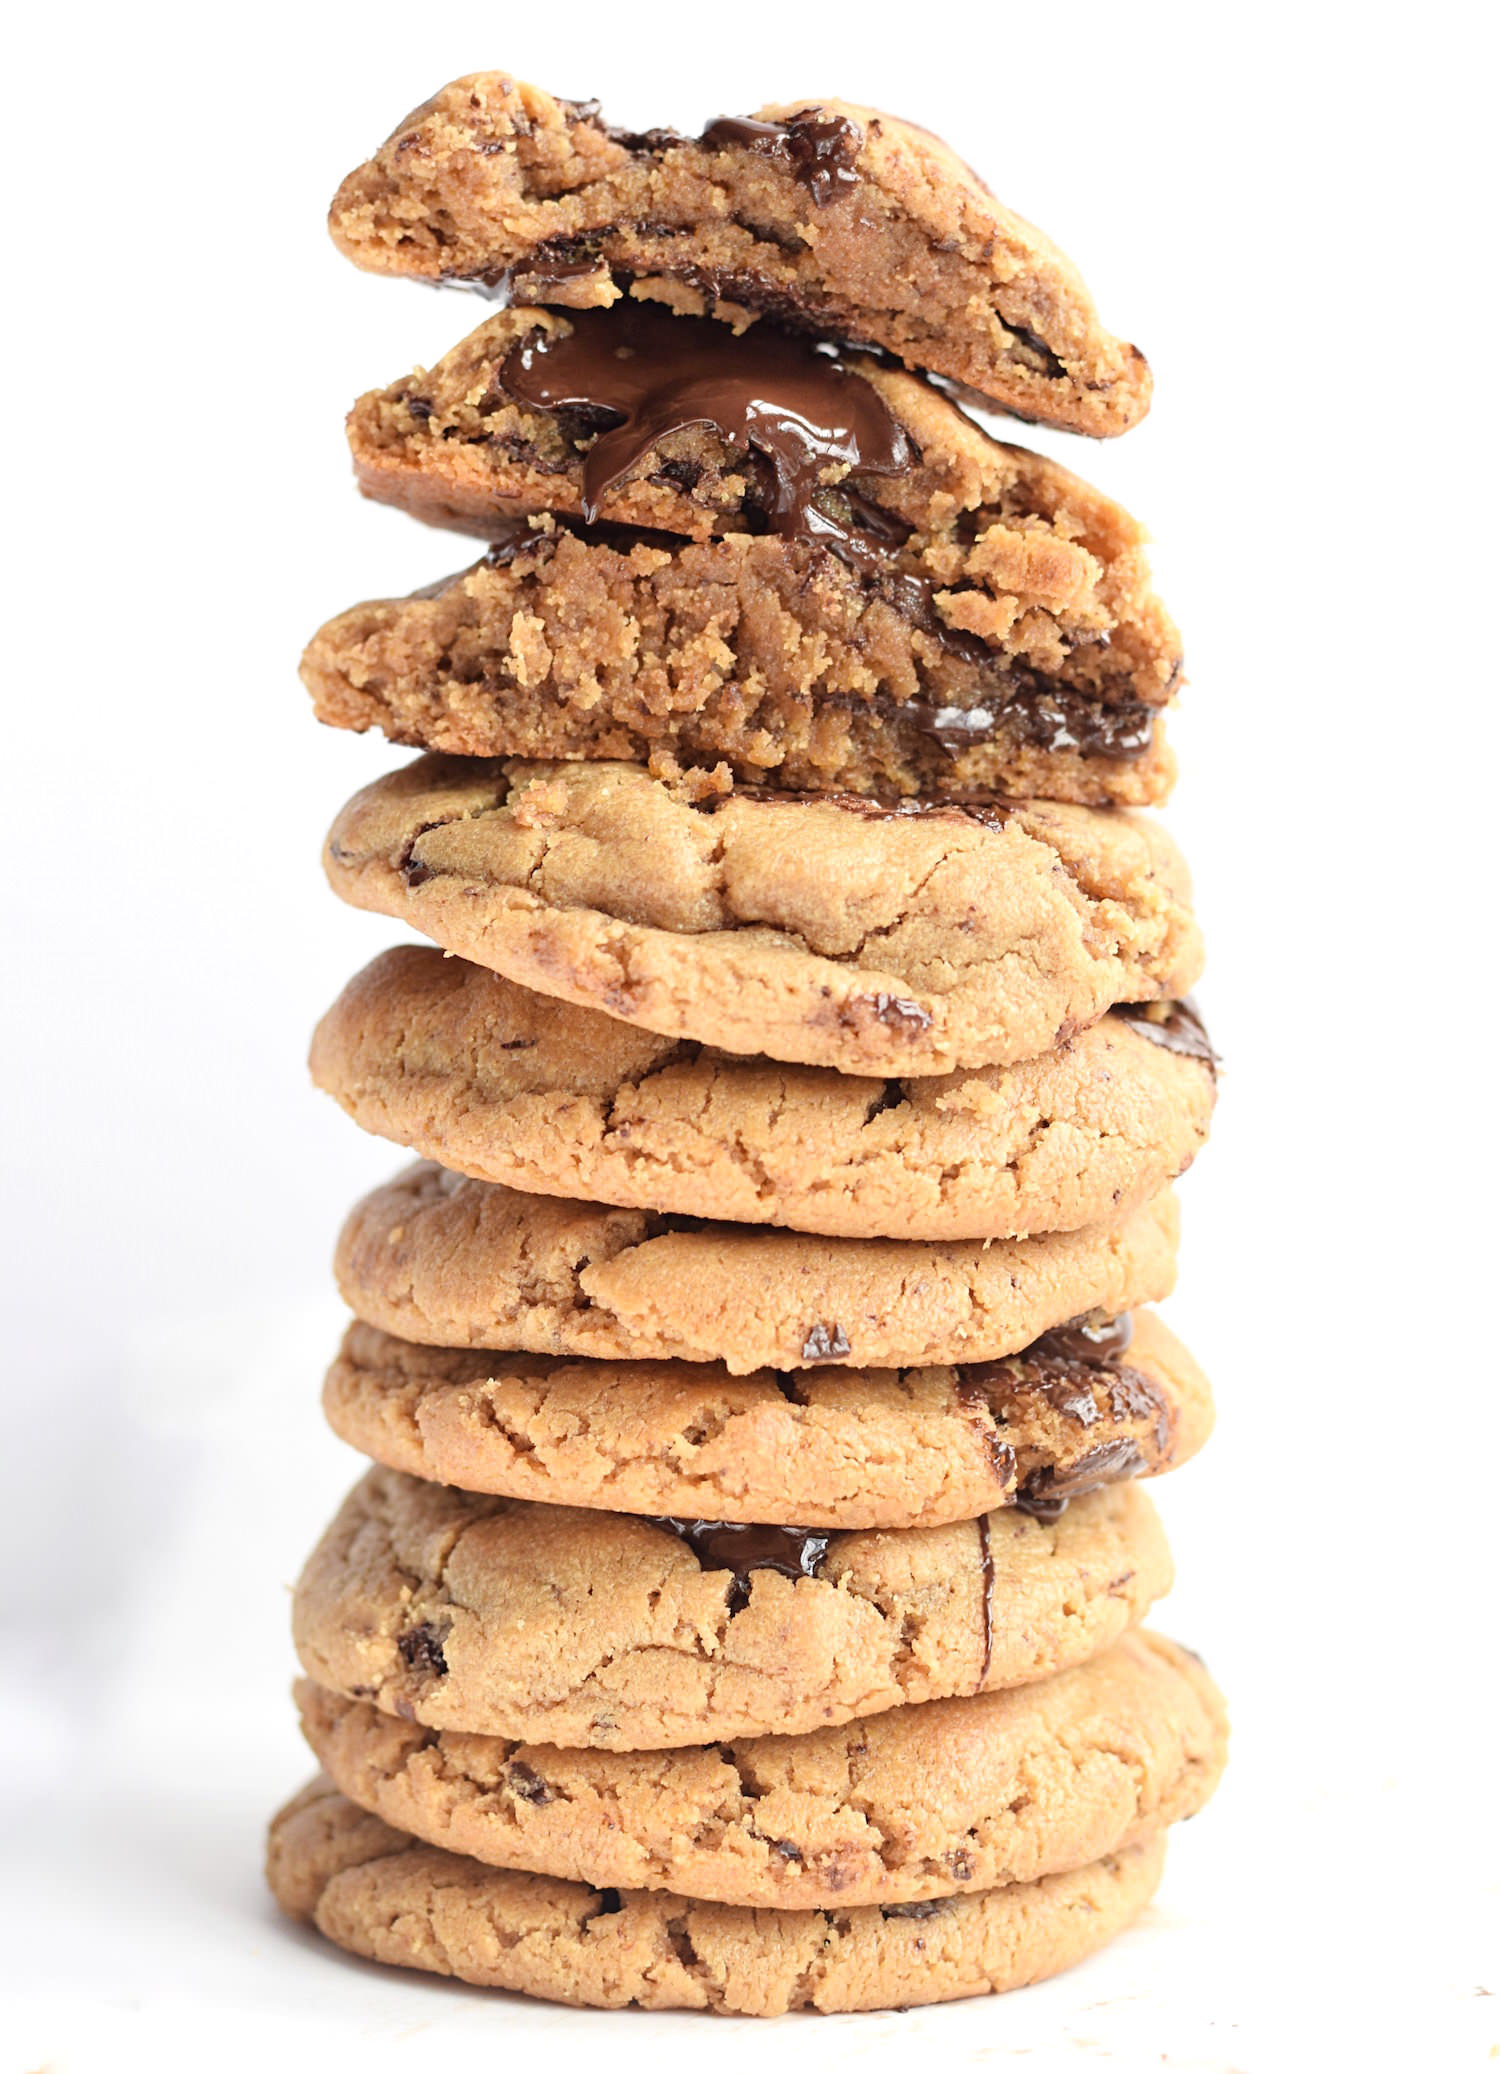 Flourless Peanut Butter Chocolate Chip Cookies: soft, thick, chewy, and gooey and packed with rich peanut butter flavor and chocolate chunks. Best peanut butter cookies! | TrufflesandTrends.com